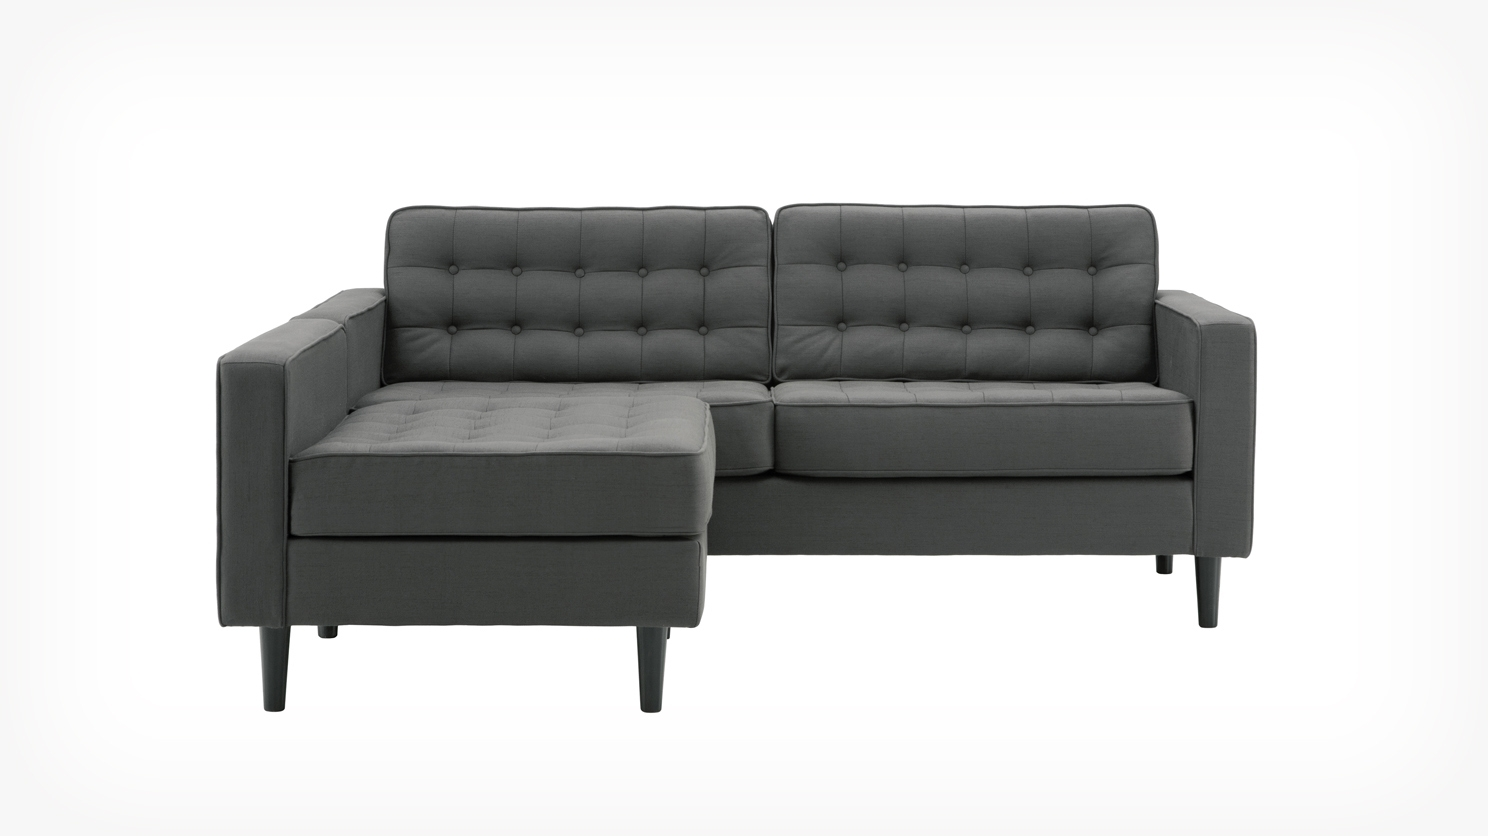 Photo Gallery Of Kijiji Ottawa Sectional Sofas Showing 9 Of 20 Photos